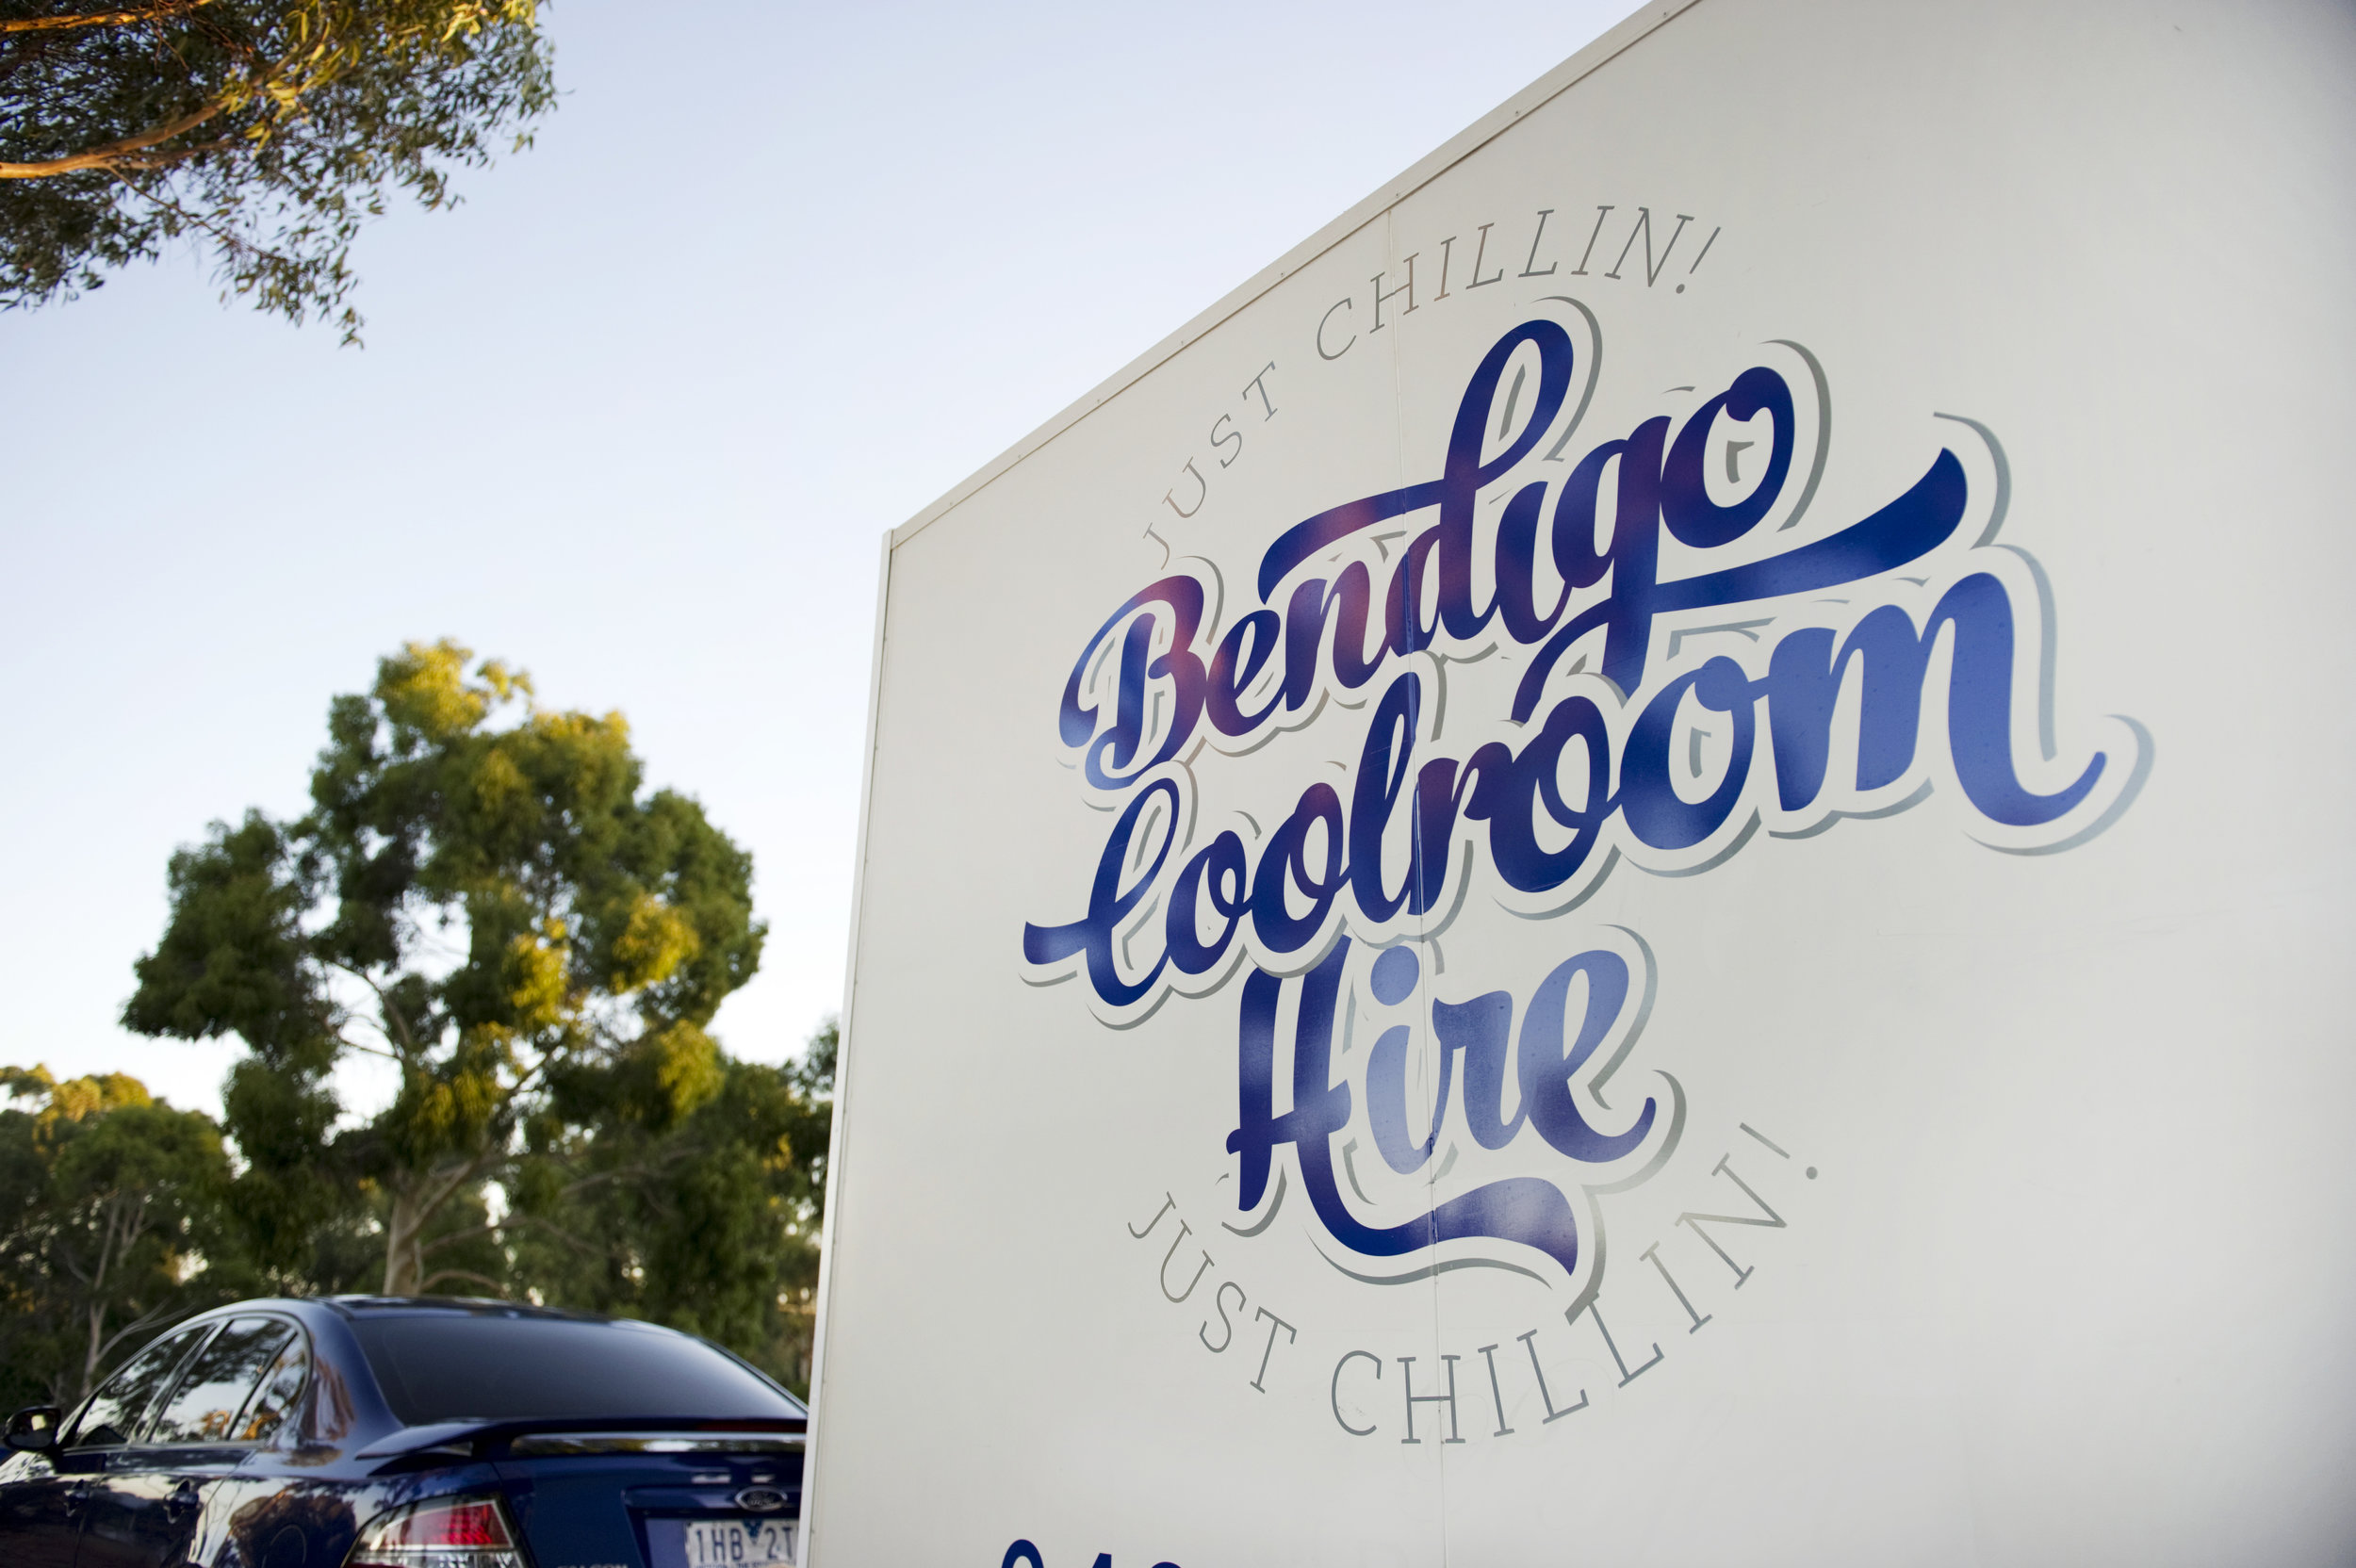 Bendigo Coolroom Hire08.jpg